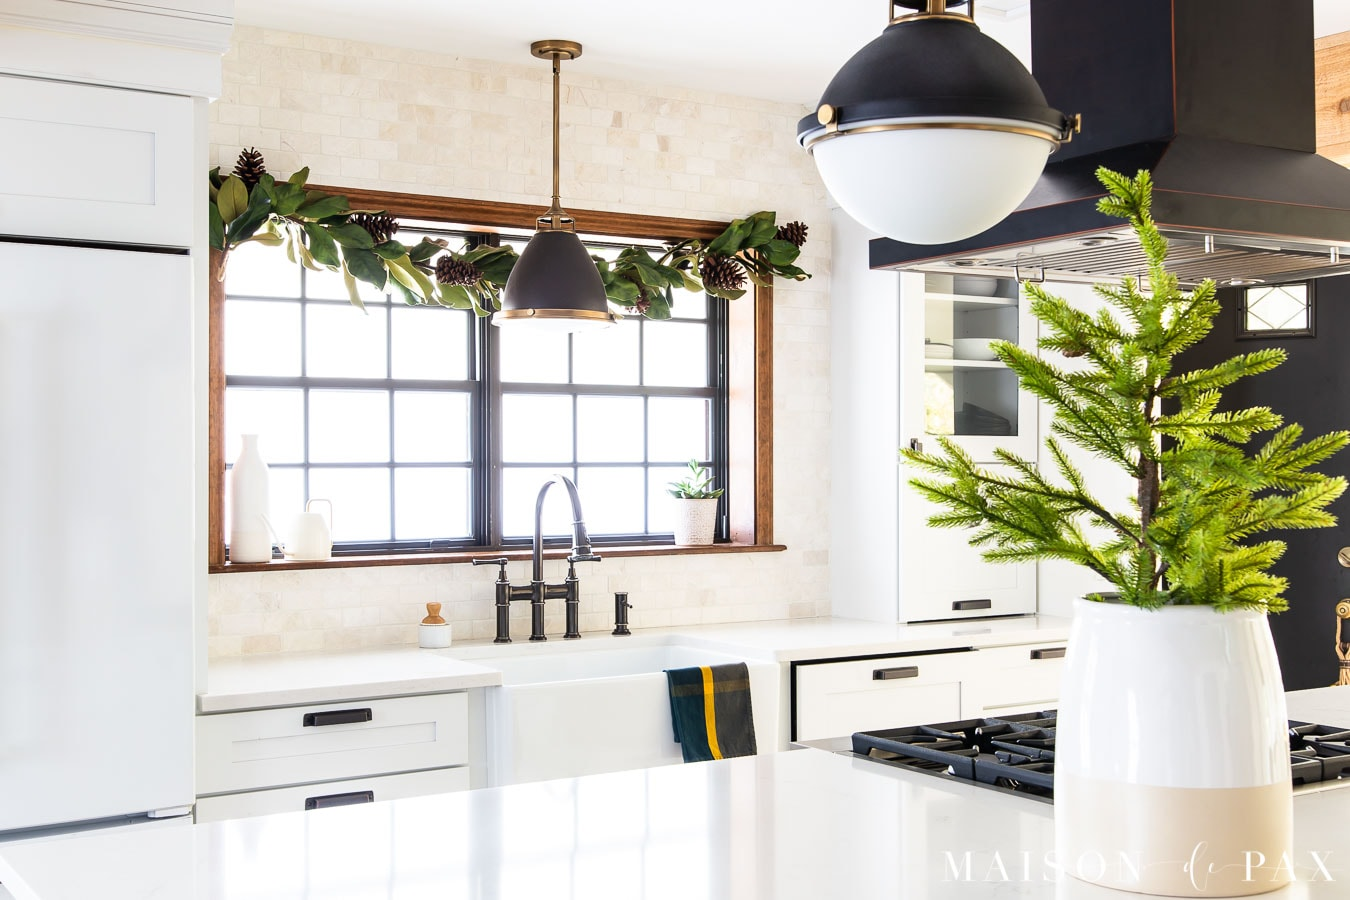 magnolia garland over farm sink with green plaid dish towel and mini tree on kitchen island | Maison de Pax